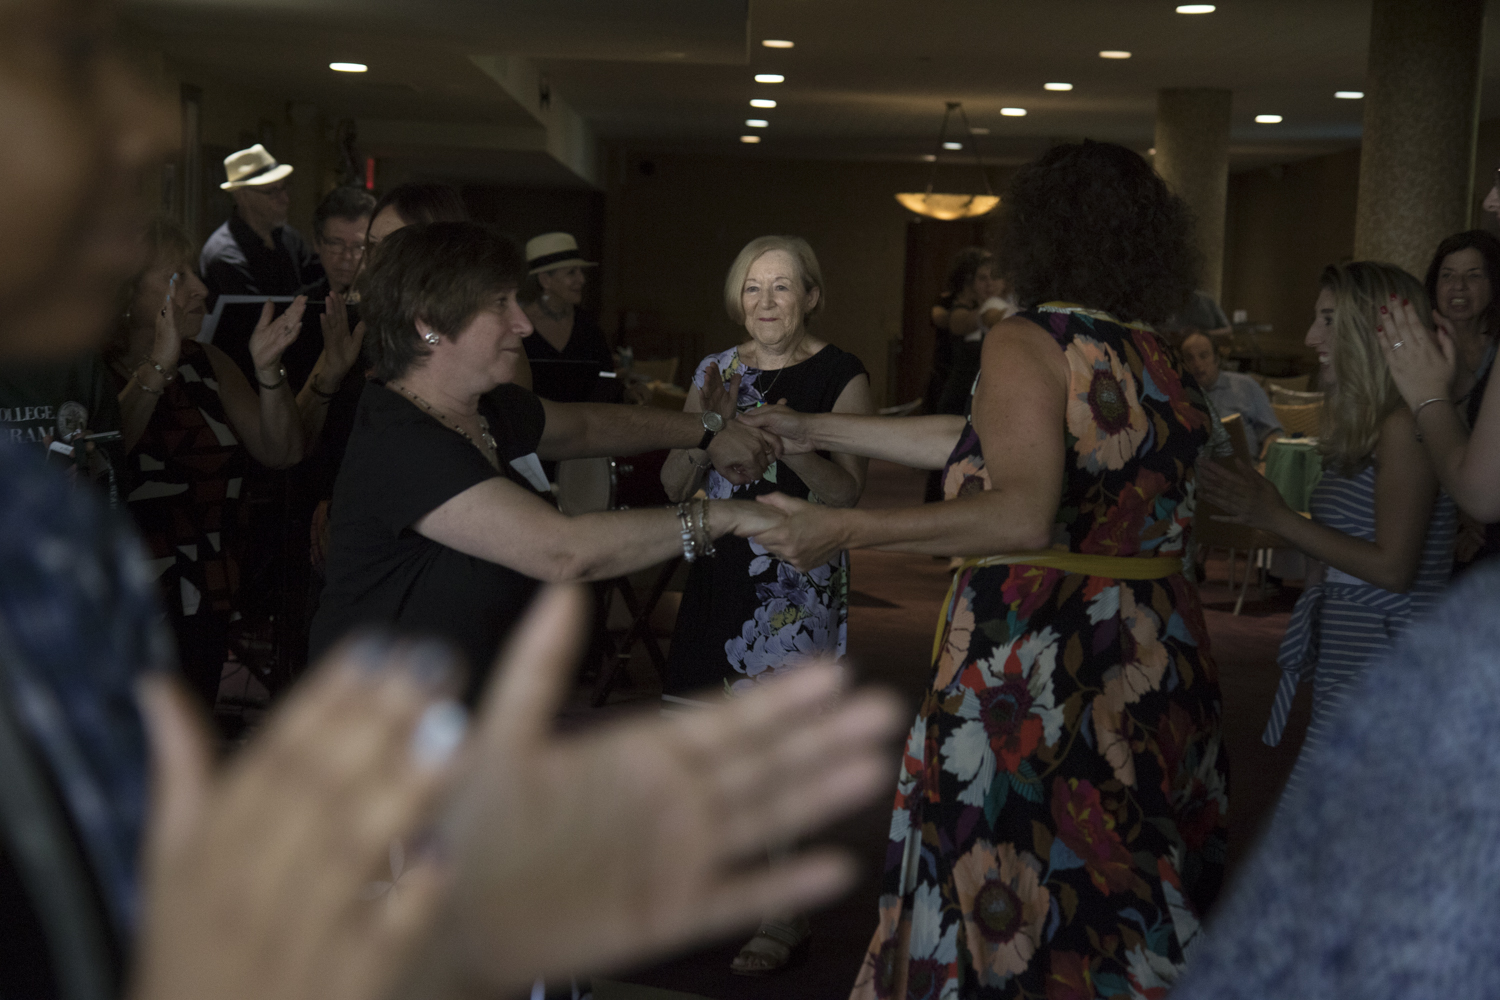 Holocaust survivor Brenda Perelman is illuminated at the Rosh Hashanah Lunch at Wagner College. Students, Holocaust survivors and Jewish community members dance to the Tsu Fil Duvids Klezmer Ensemble music on Sunday, Sept. 13, 2018.